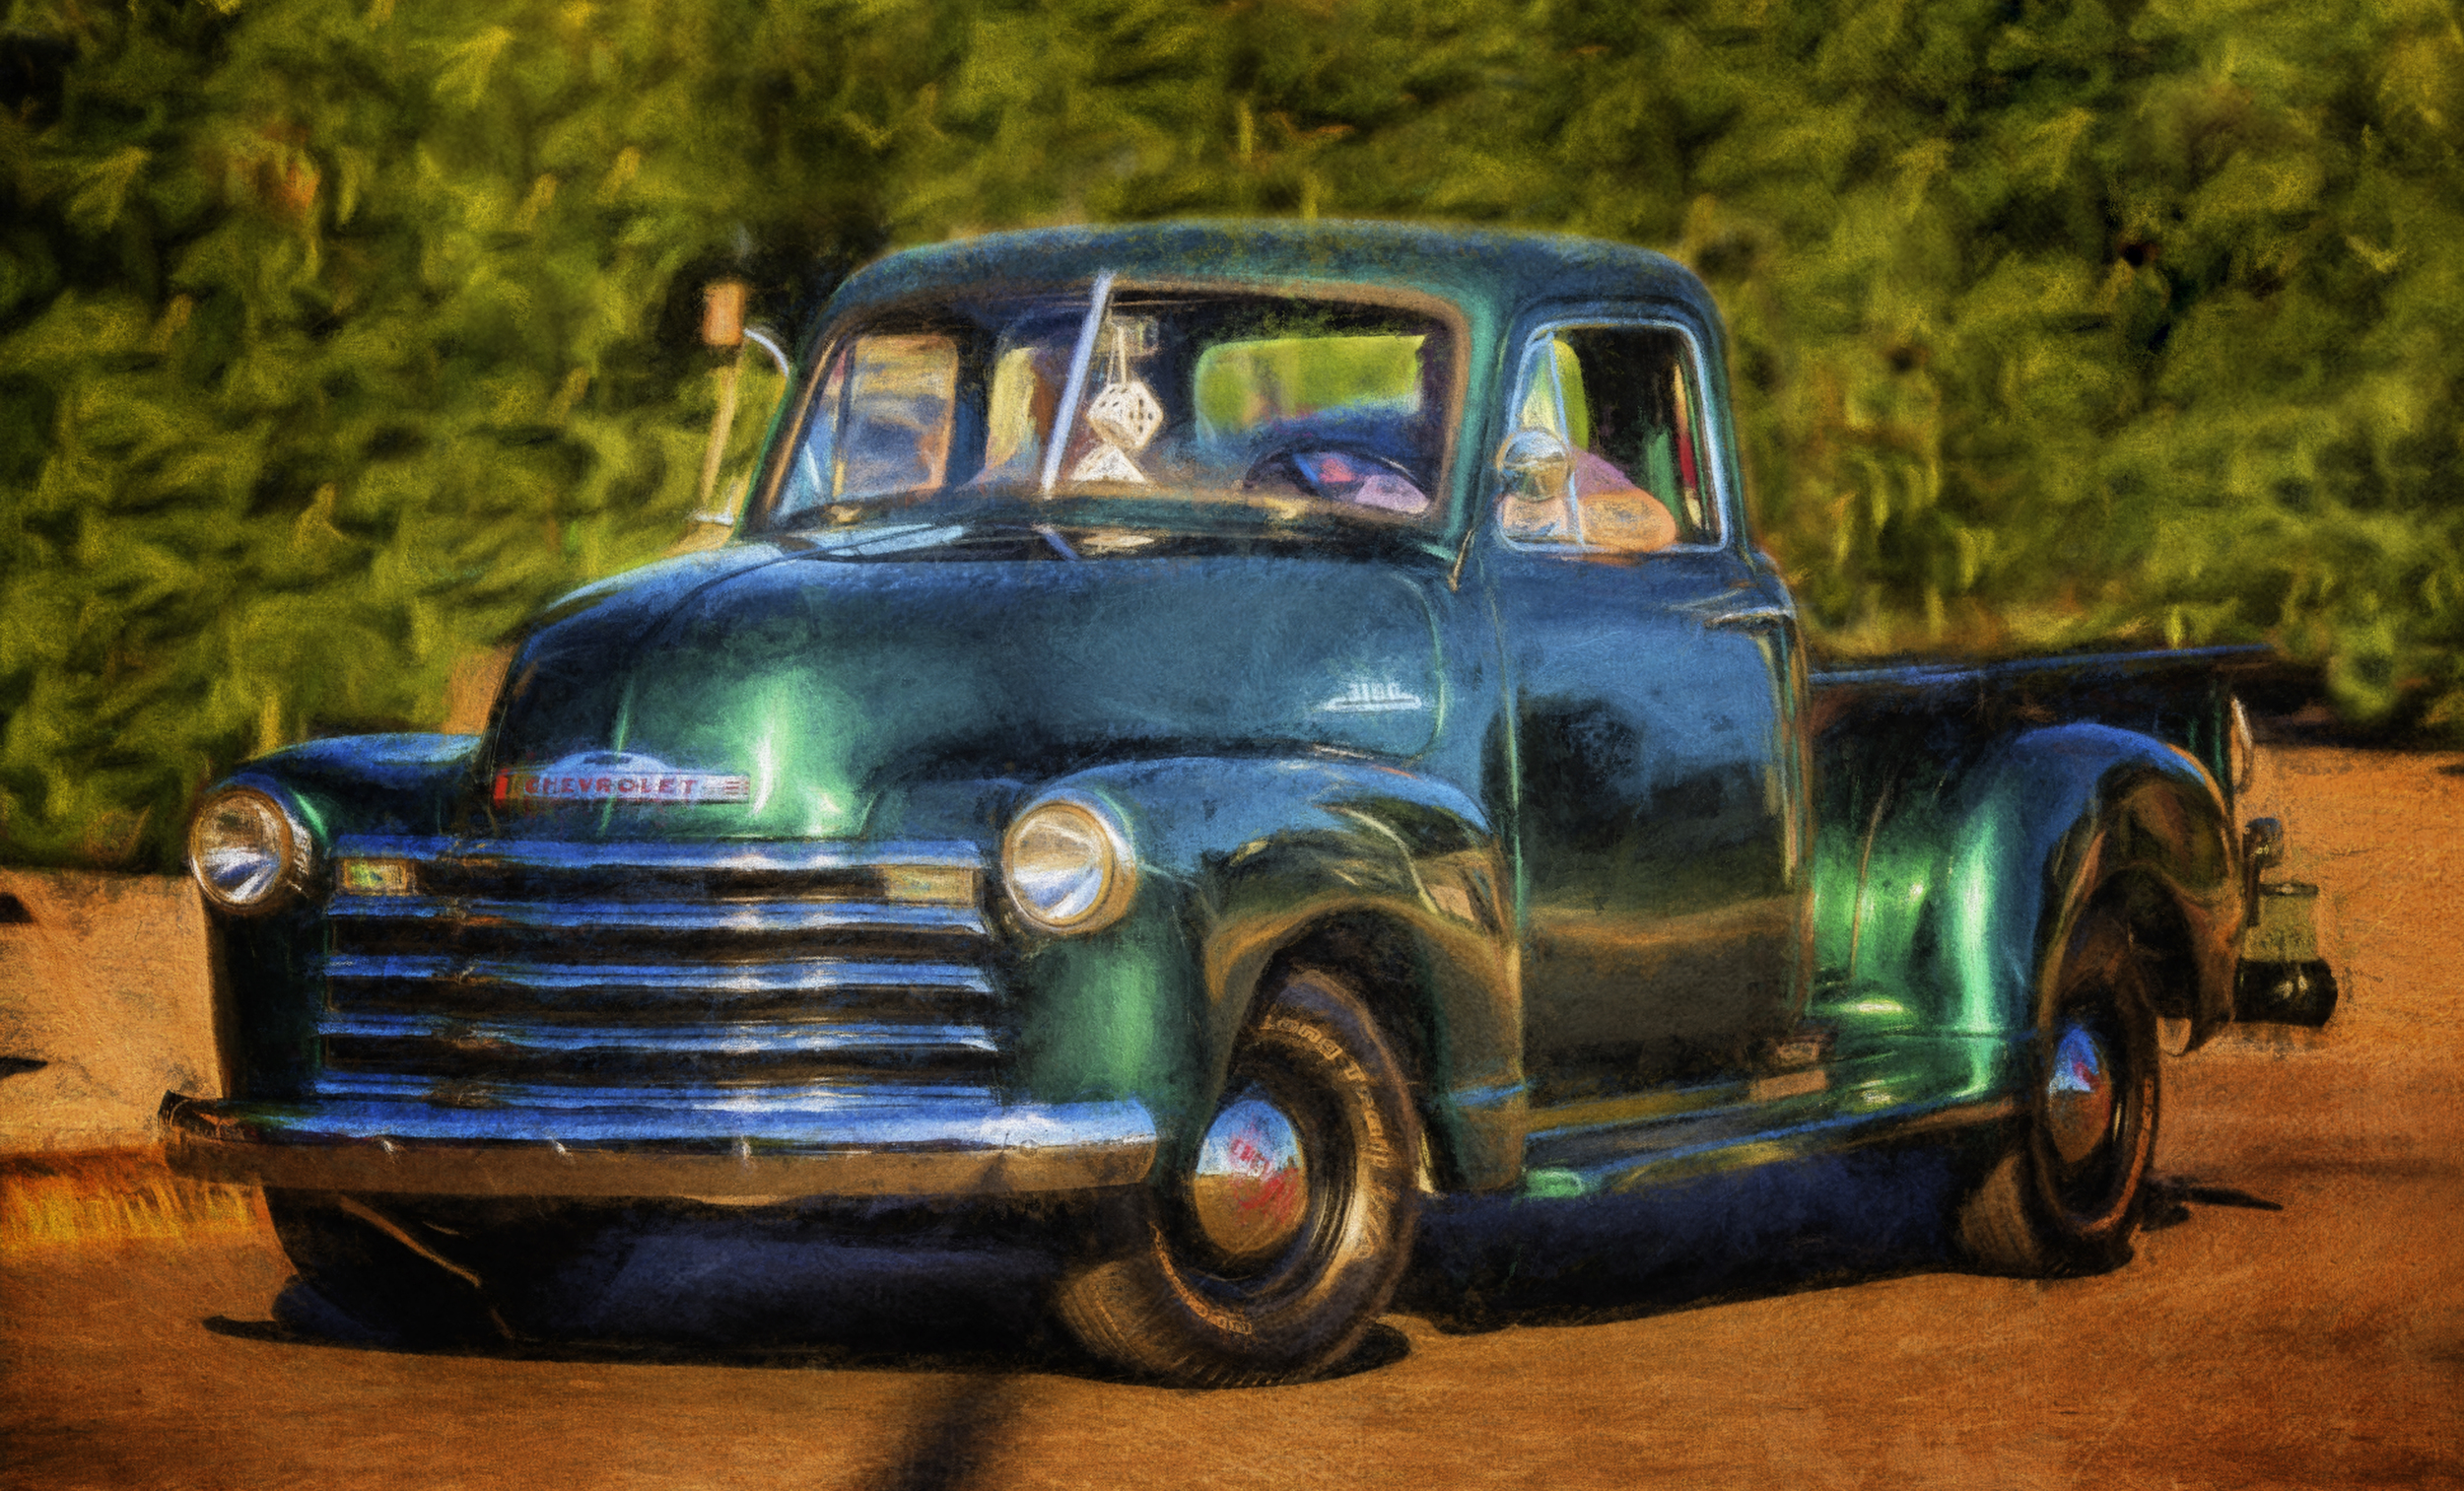 An absolutely beautiful Chevy pick-up turns onto Main St. from E. Jefferson St.  An artistic interpretation by Robin Collins.